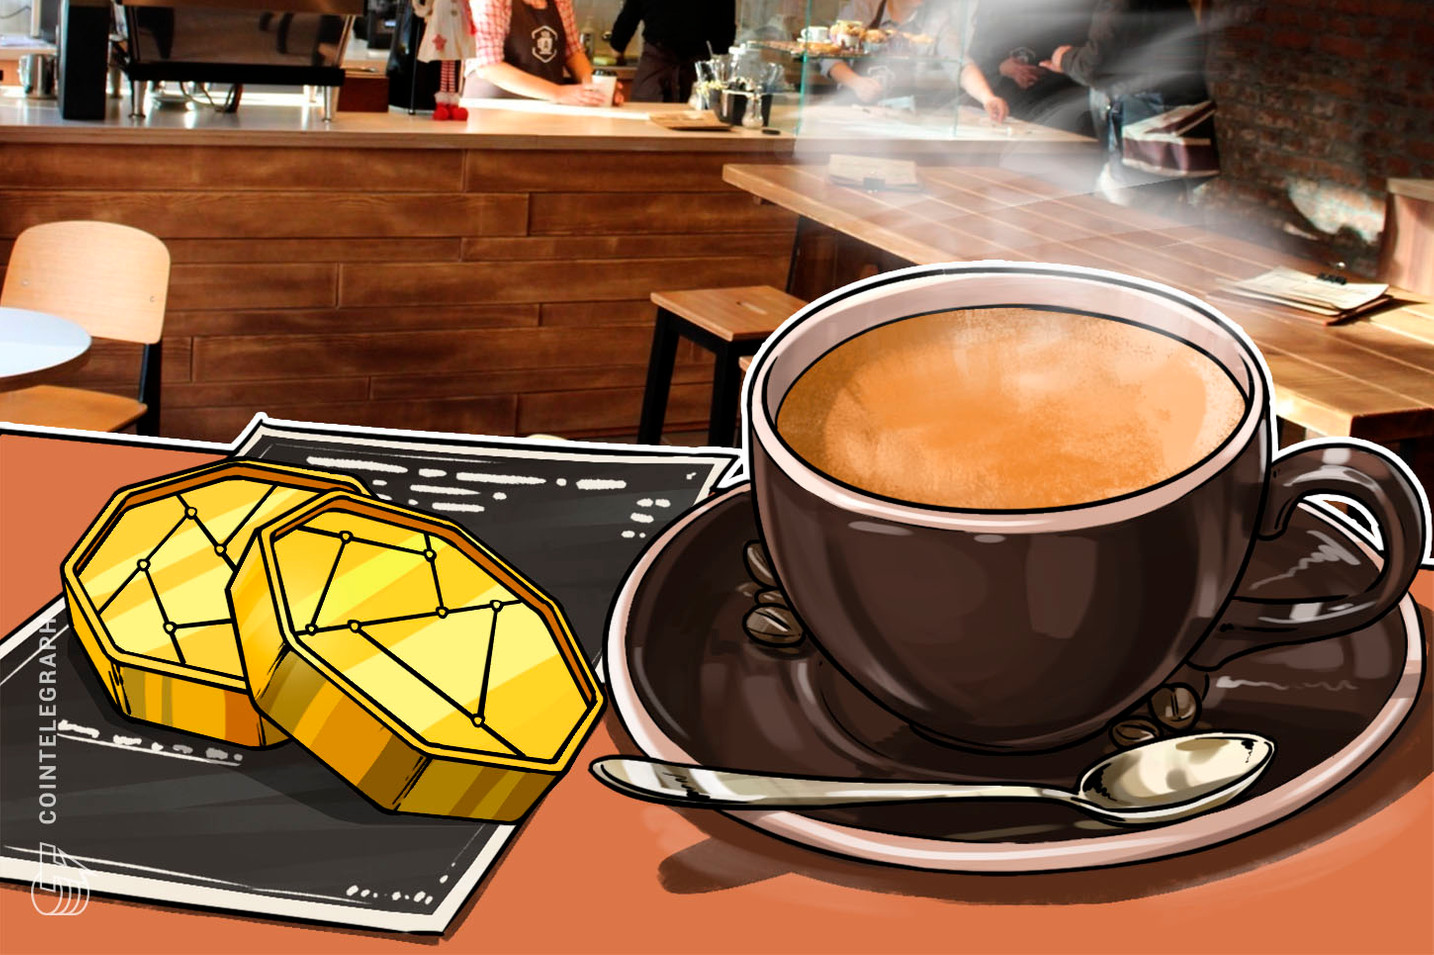 Germany: Financial Experts Don't See Crypto as an Everyday Payment Method by 2020